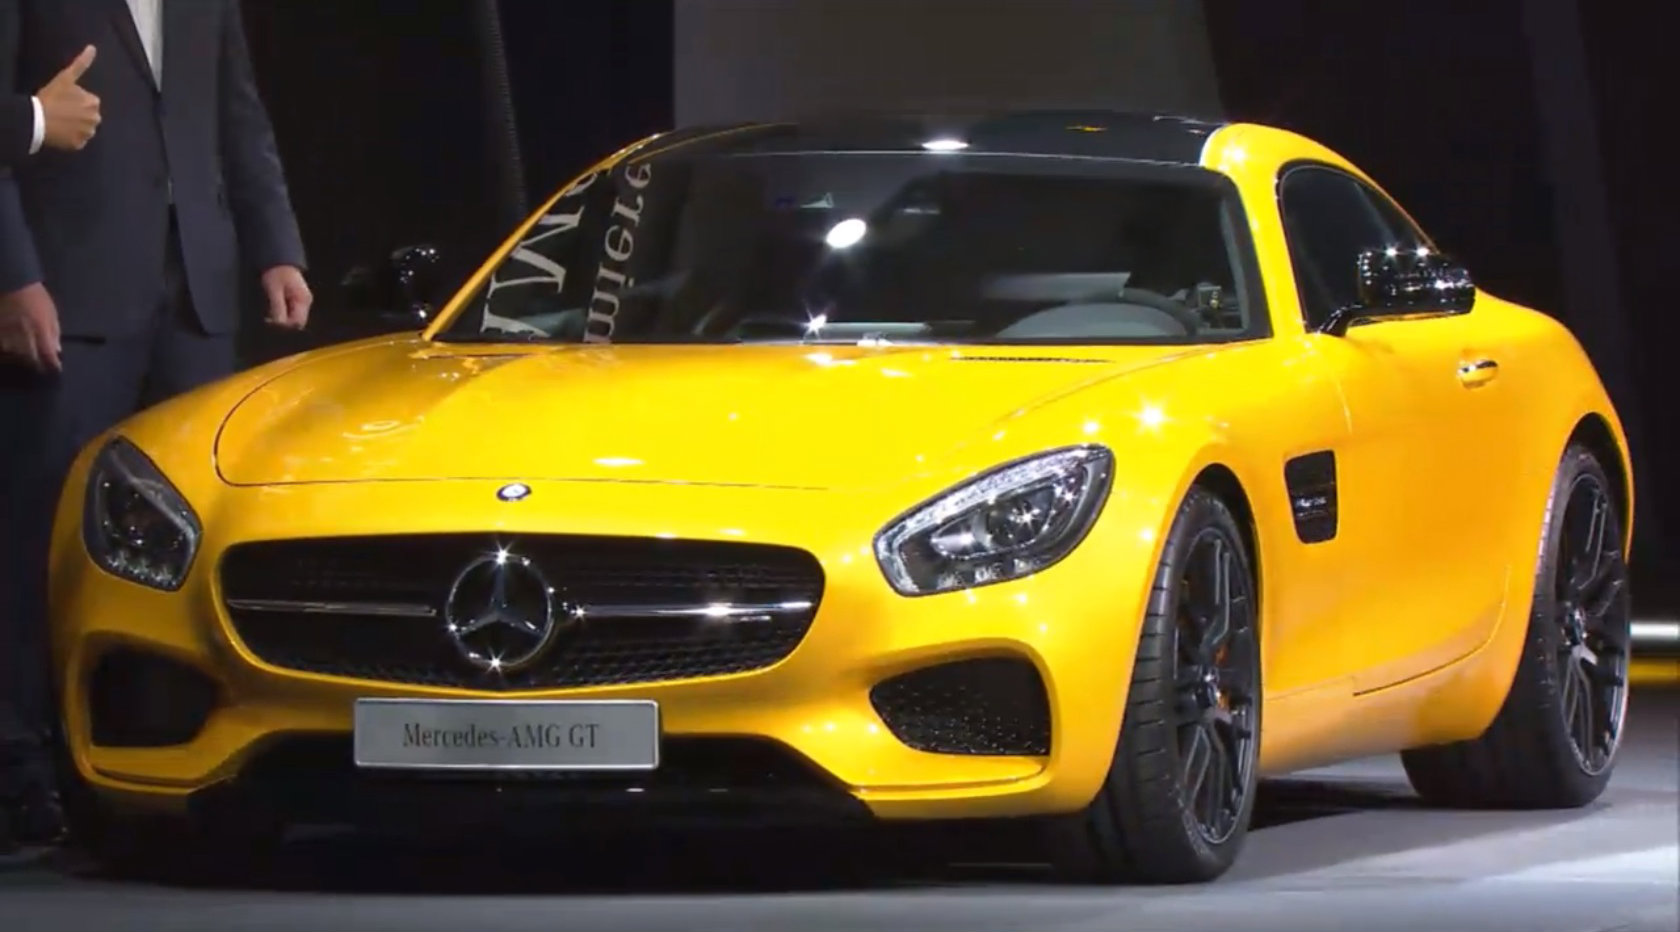 Amg Gt Mercedes Amg Gt Revealed In Germany Video Autoevolution